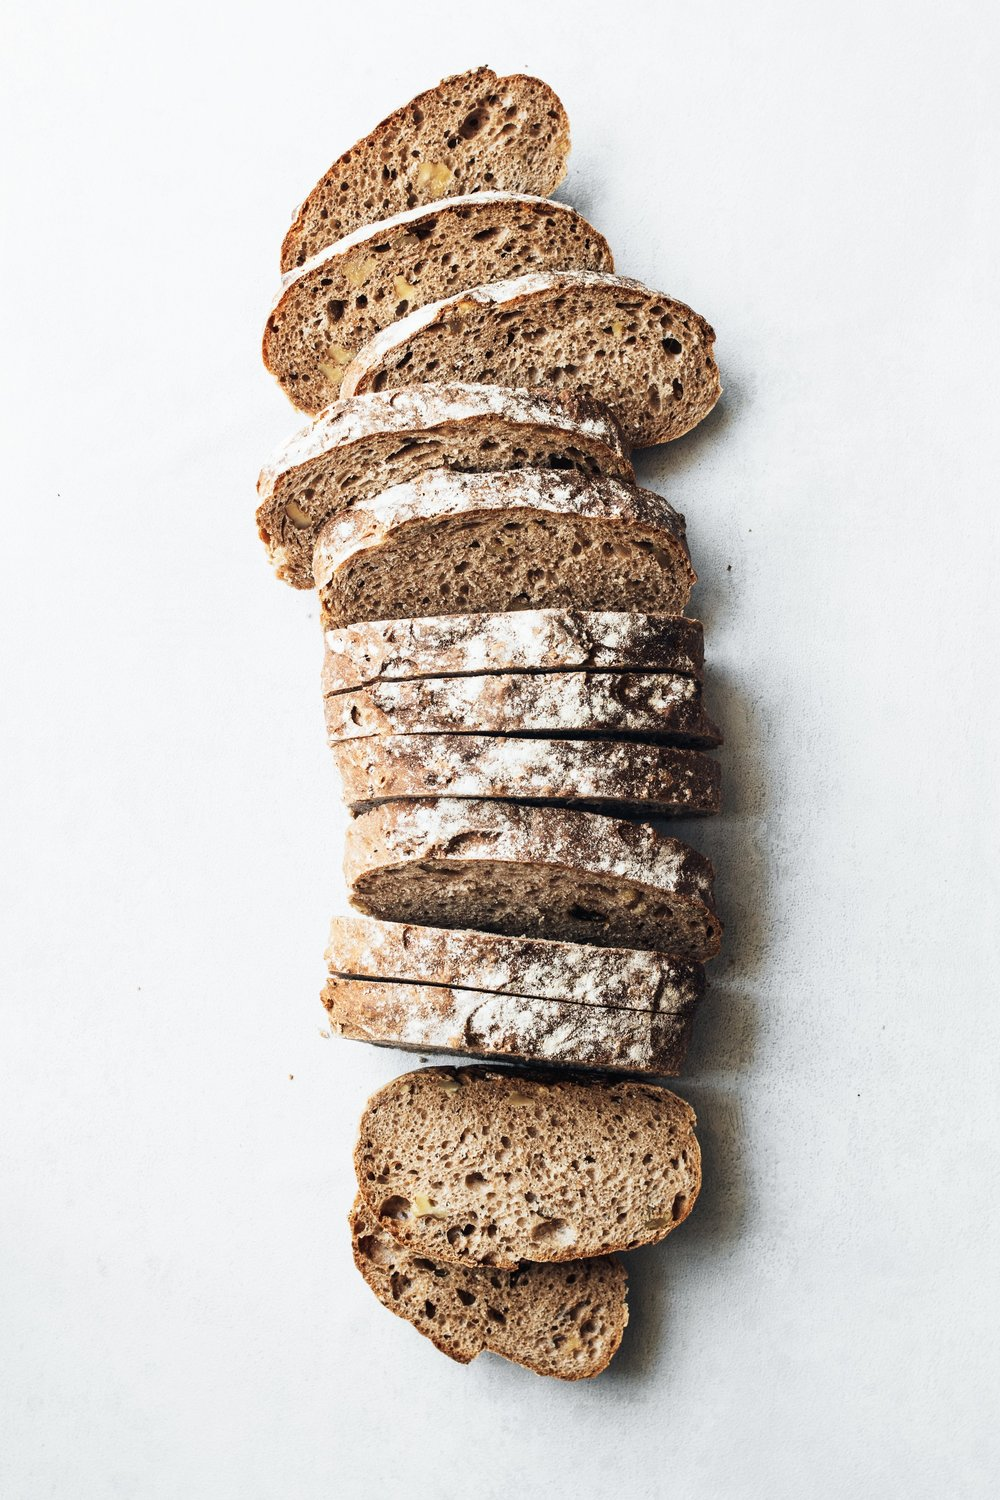 We use only the finest ingredients.  Our products have no added chemicals, preservatives, or animal fats. We use only non-bromated flours. Our breads are low in fat and high in fiber with very low salt content. -